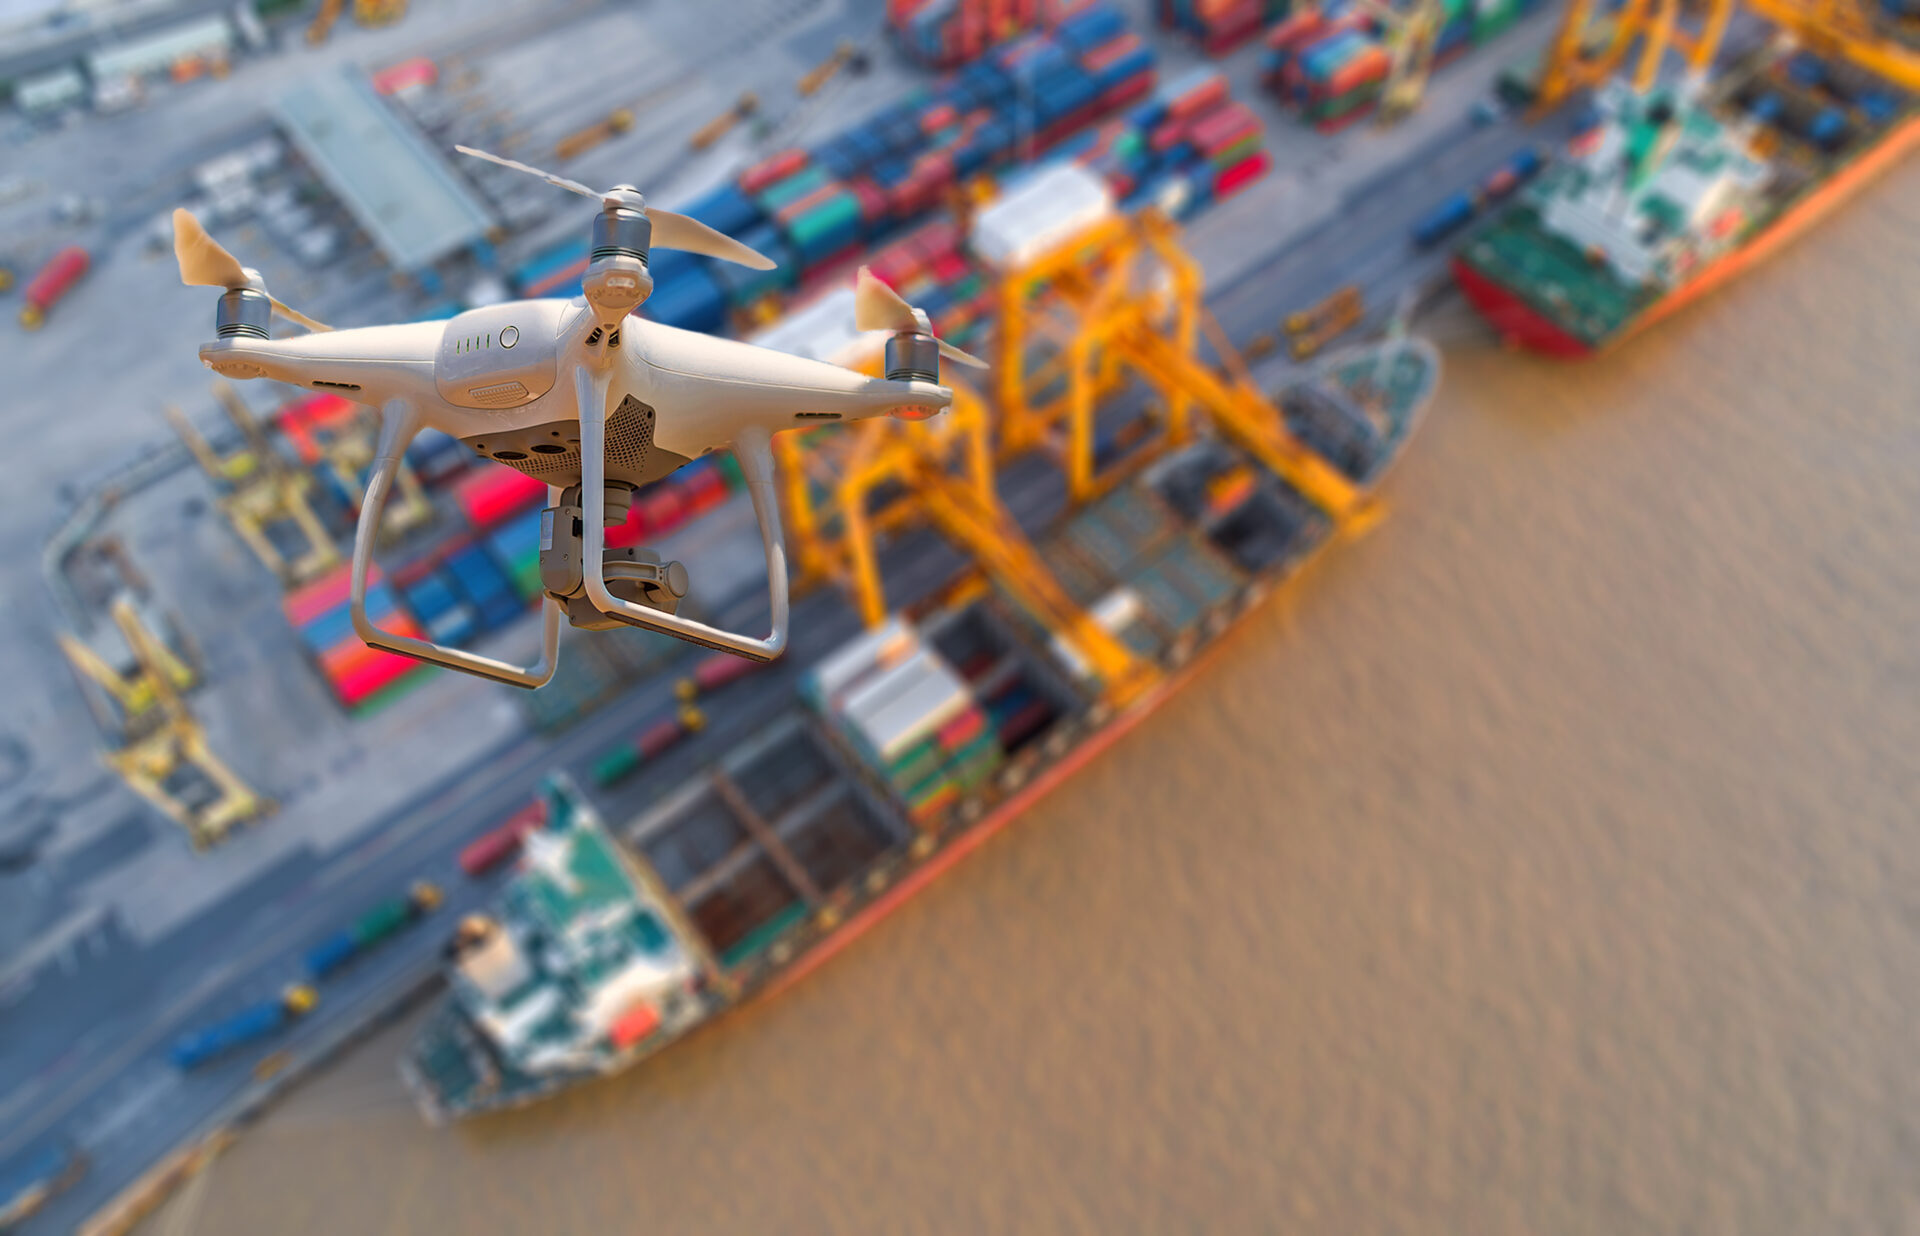 Drone flying over container ship in import export and business